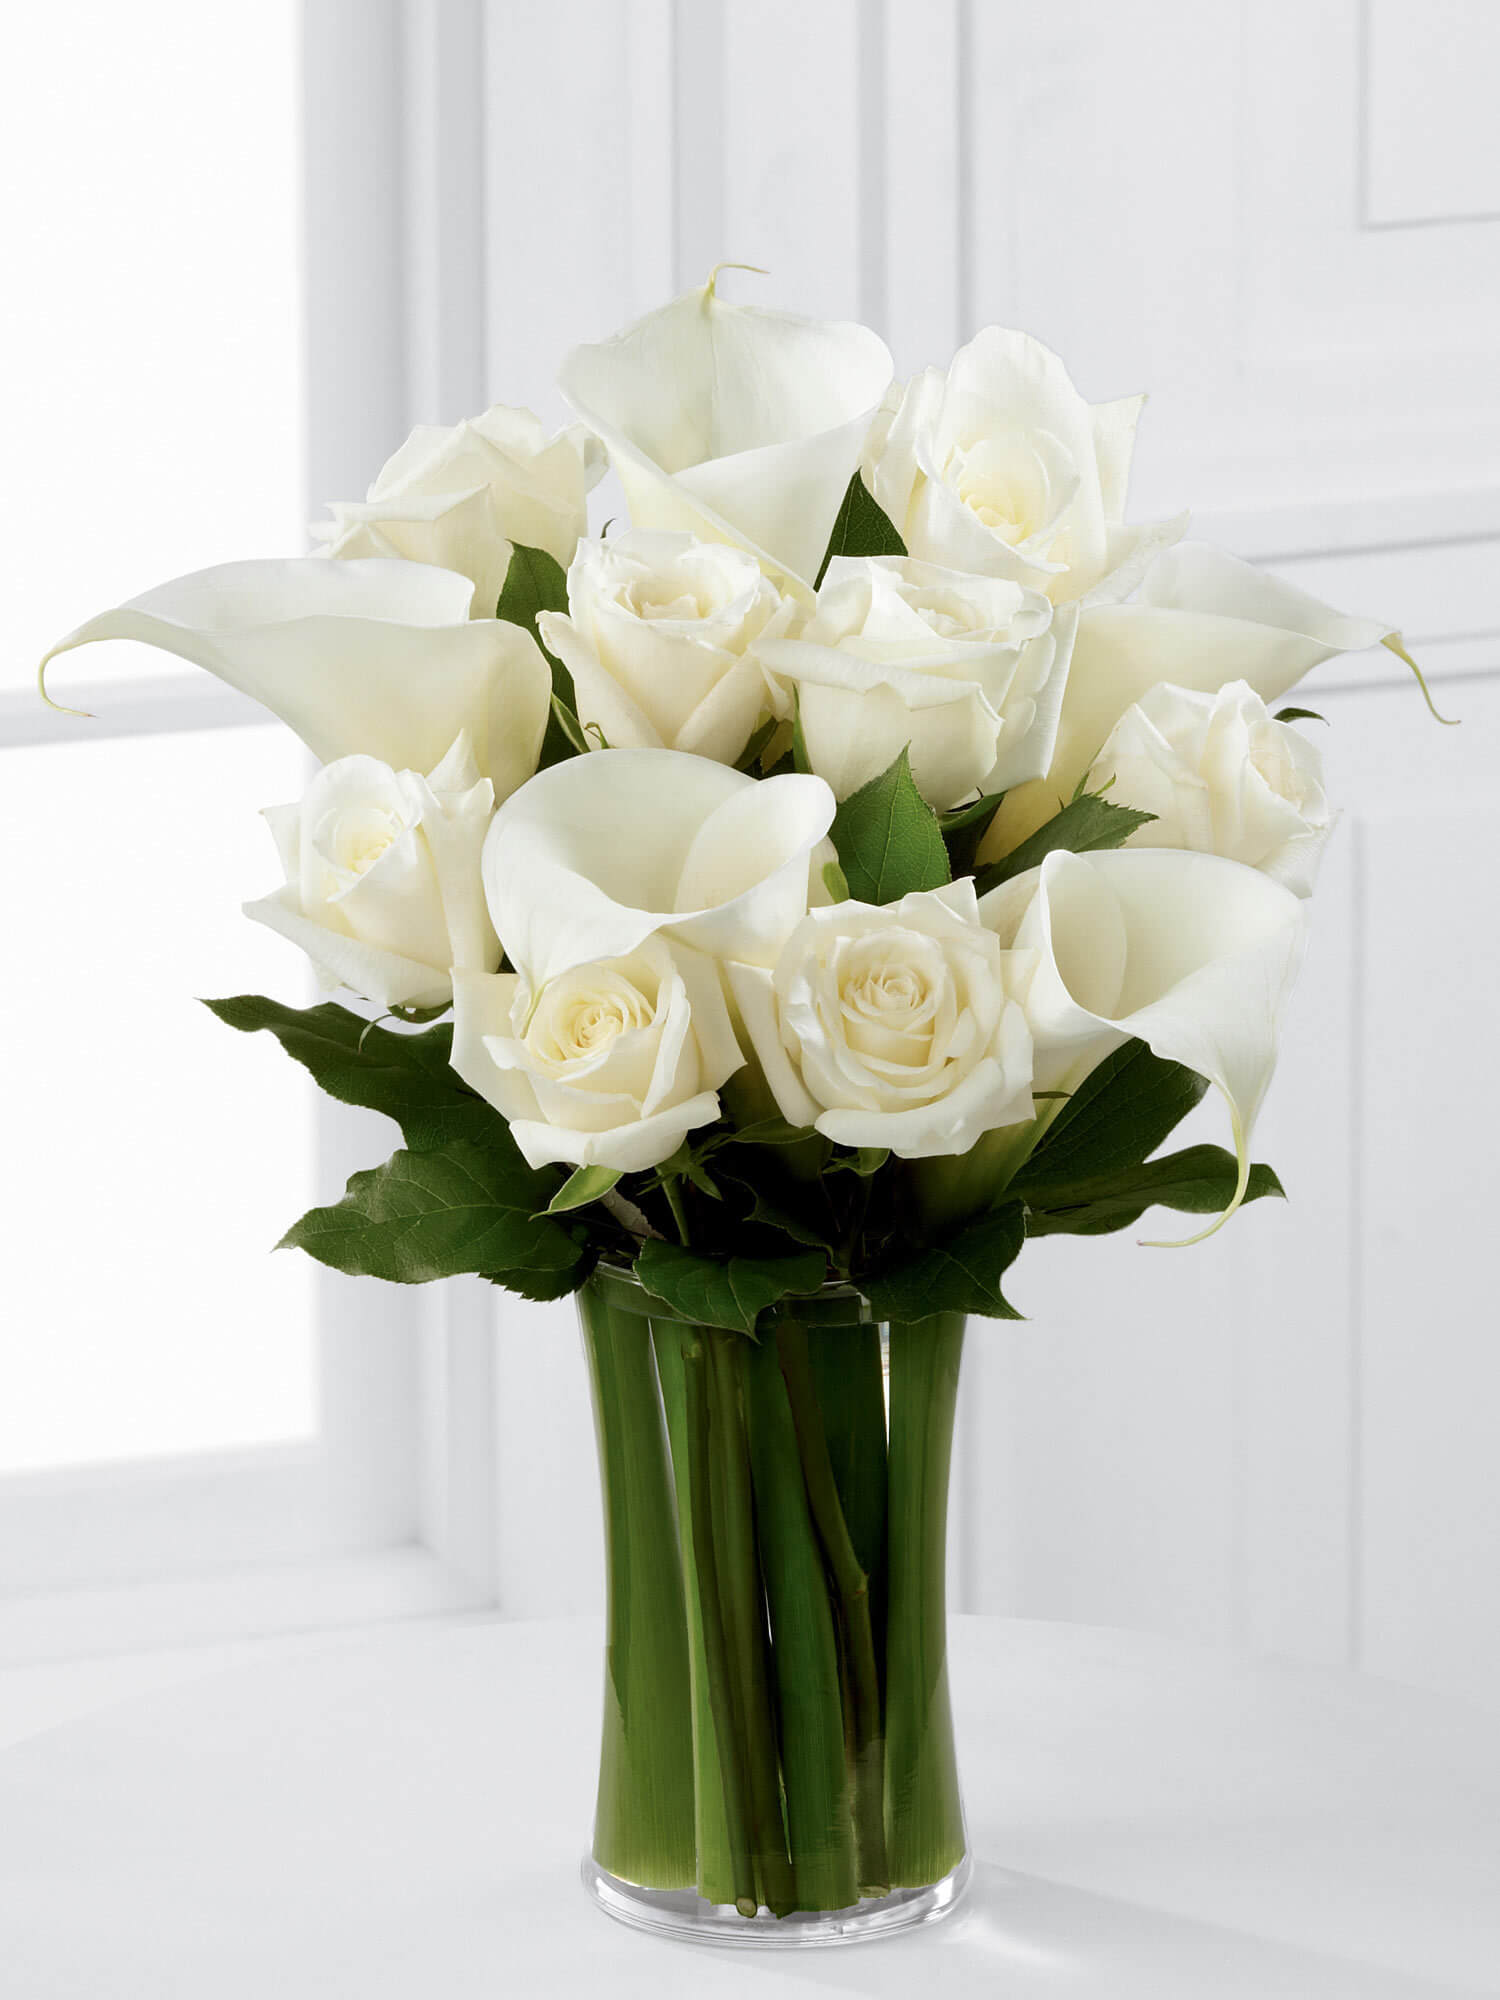 Luxury White Rose and Calla Lily Vase